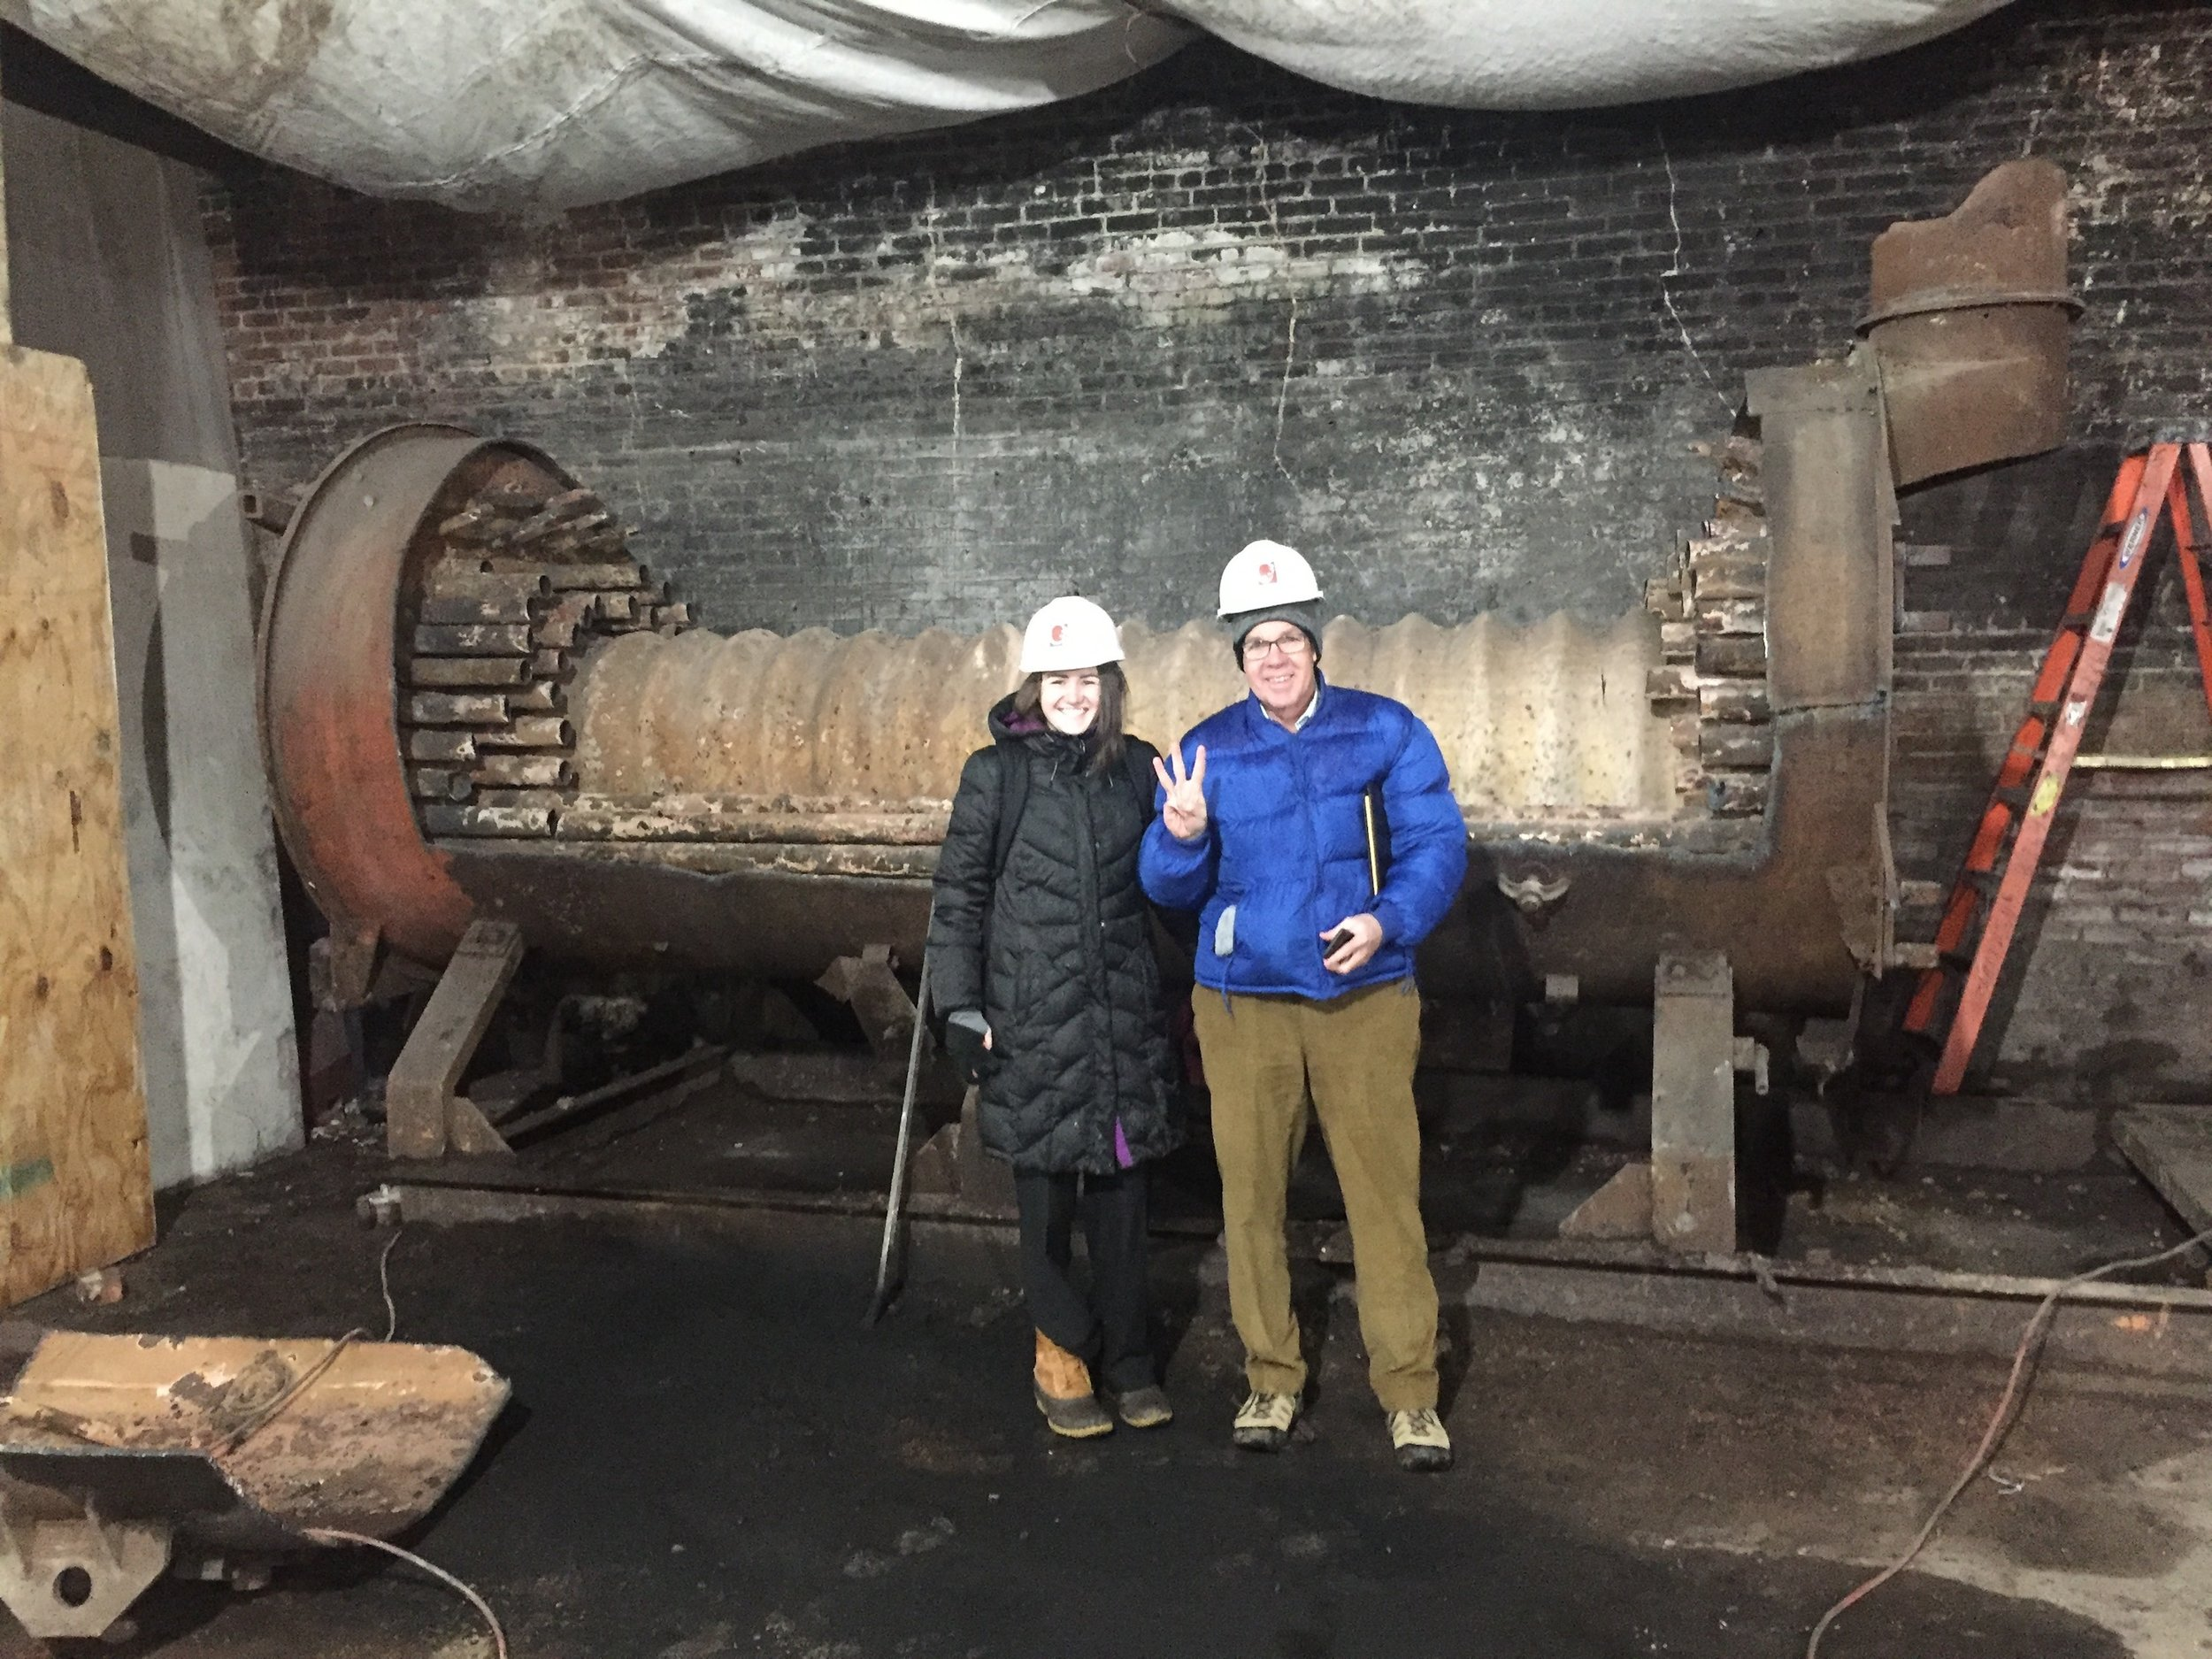 John McConnell, Founder and President, and Tara Hank, Development Office Coordinator, stand in front of the old boiler.